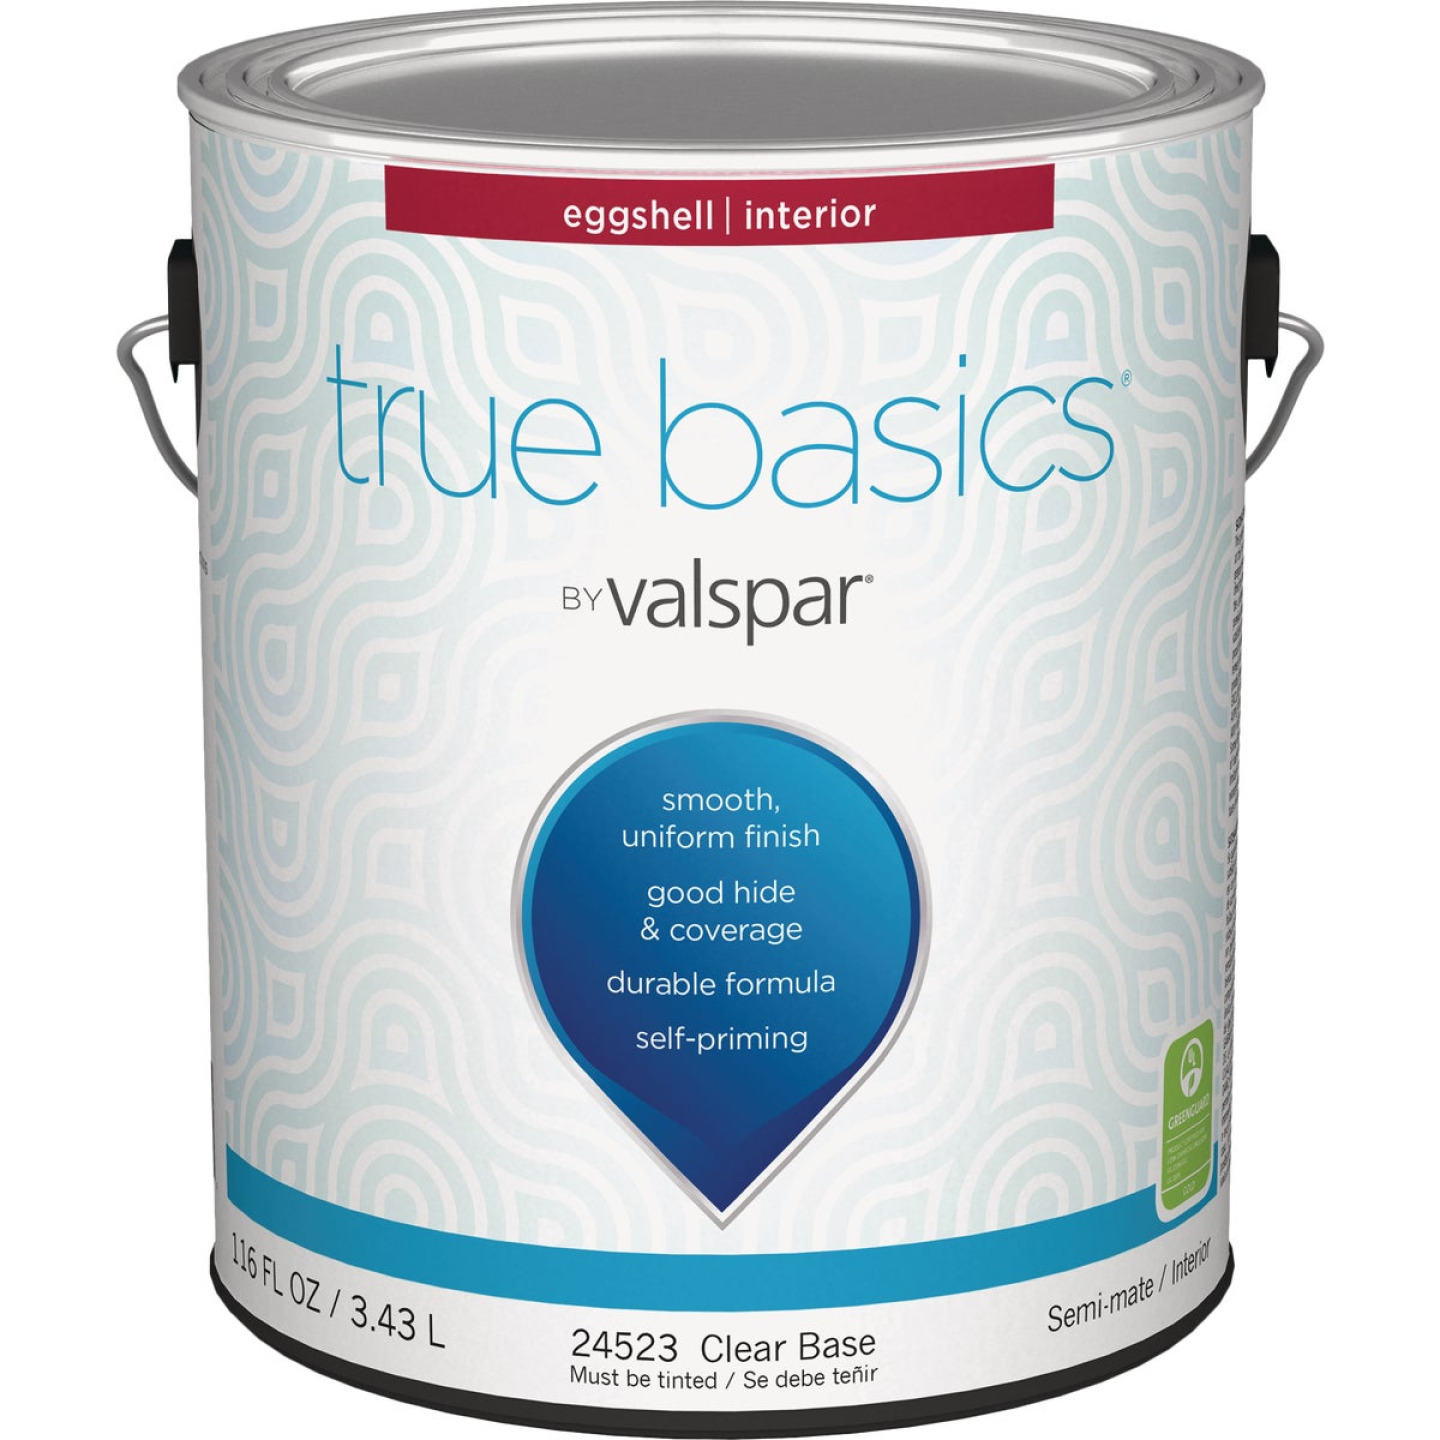 True Basics by Valspar Eggshell Interior Wall Paint, 1 Gal., Clear Base Image 1